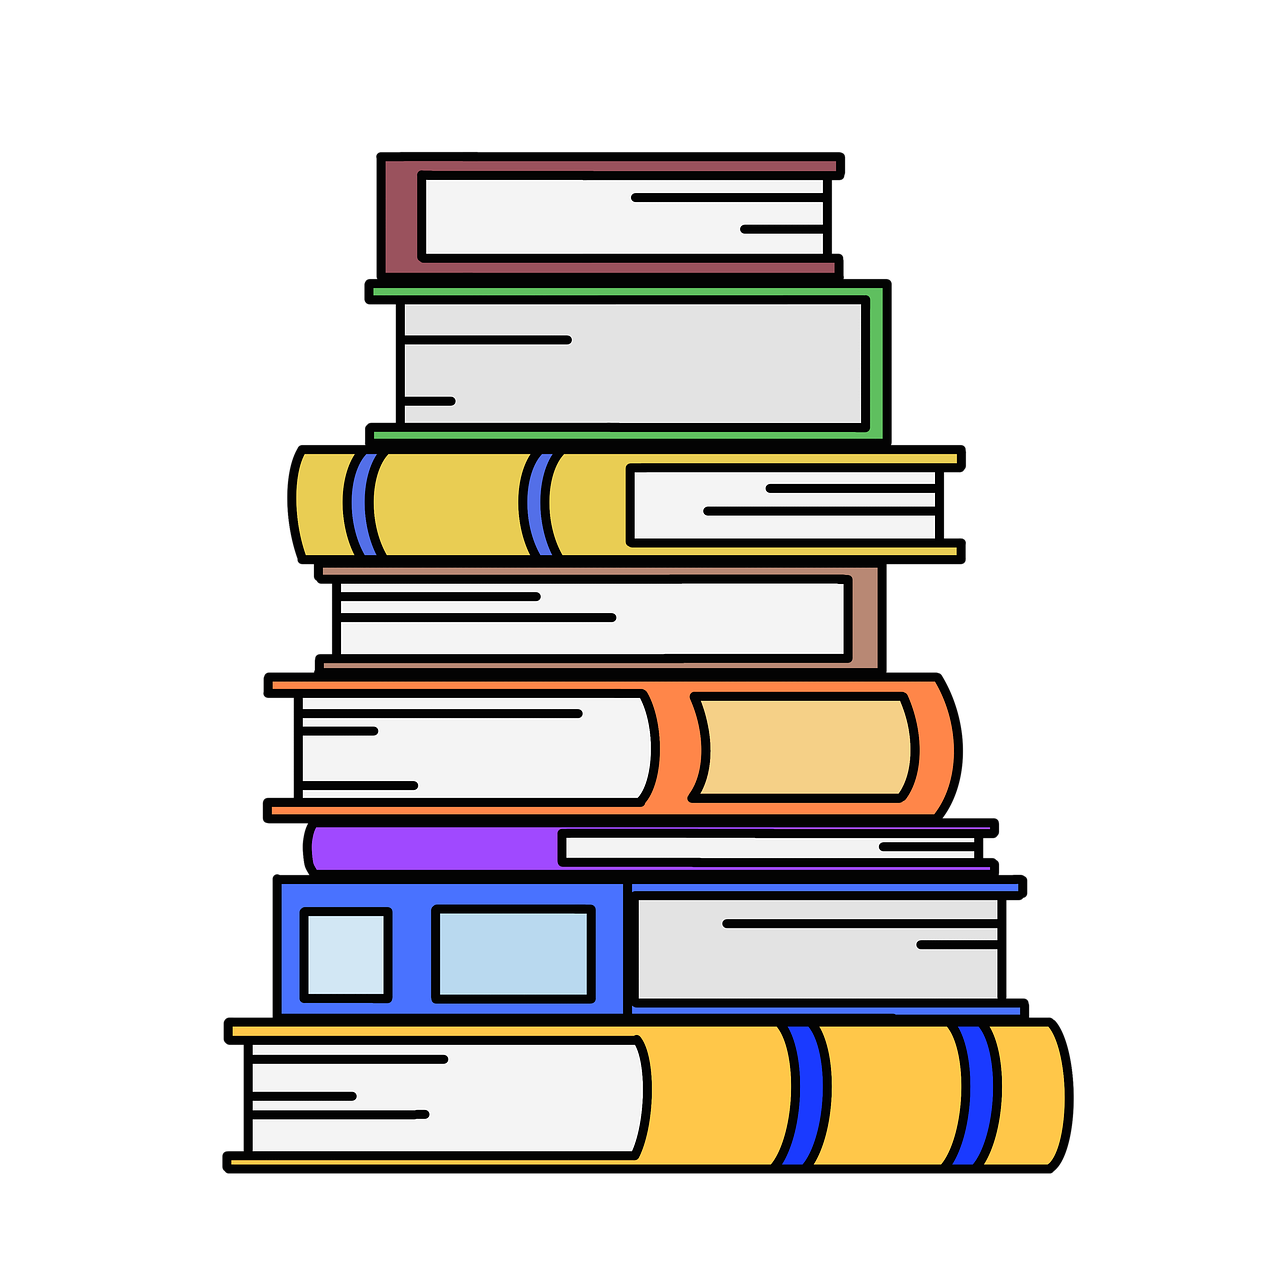 Books Stack Of Book - Free image on Pixabay